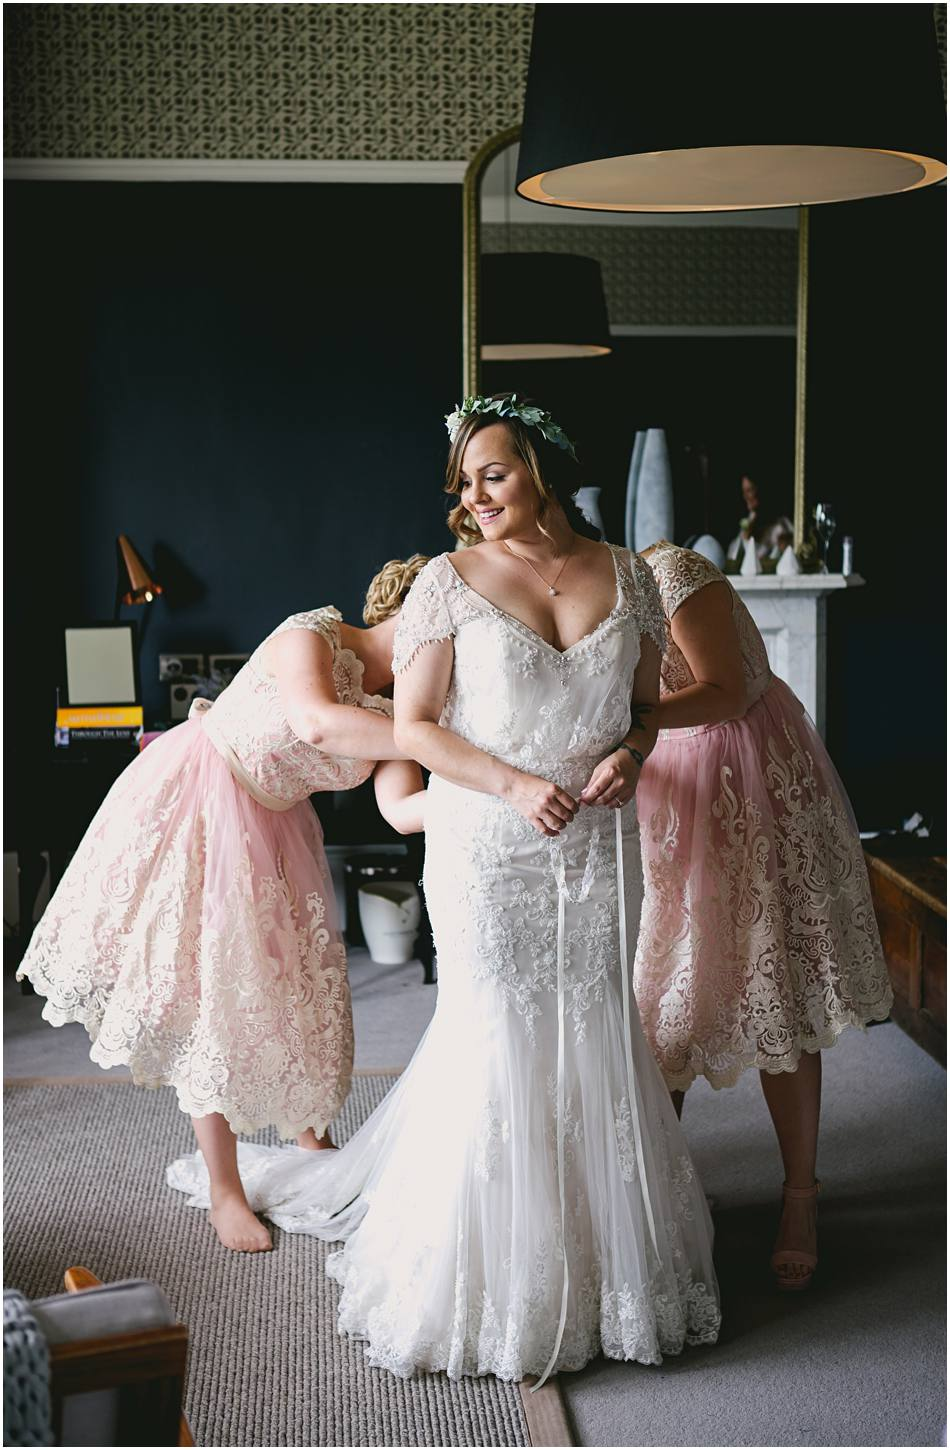 Bridesmaids in short pink lace dresses helping the Bride get ready on her wedding day